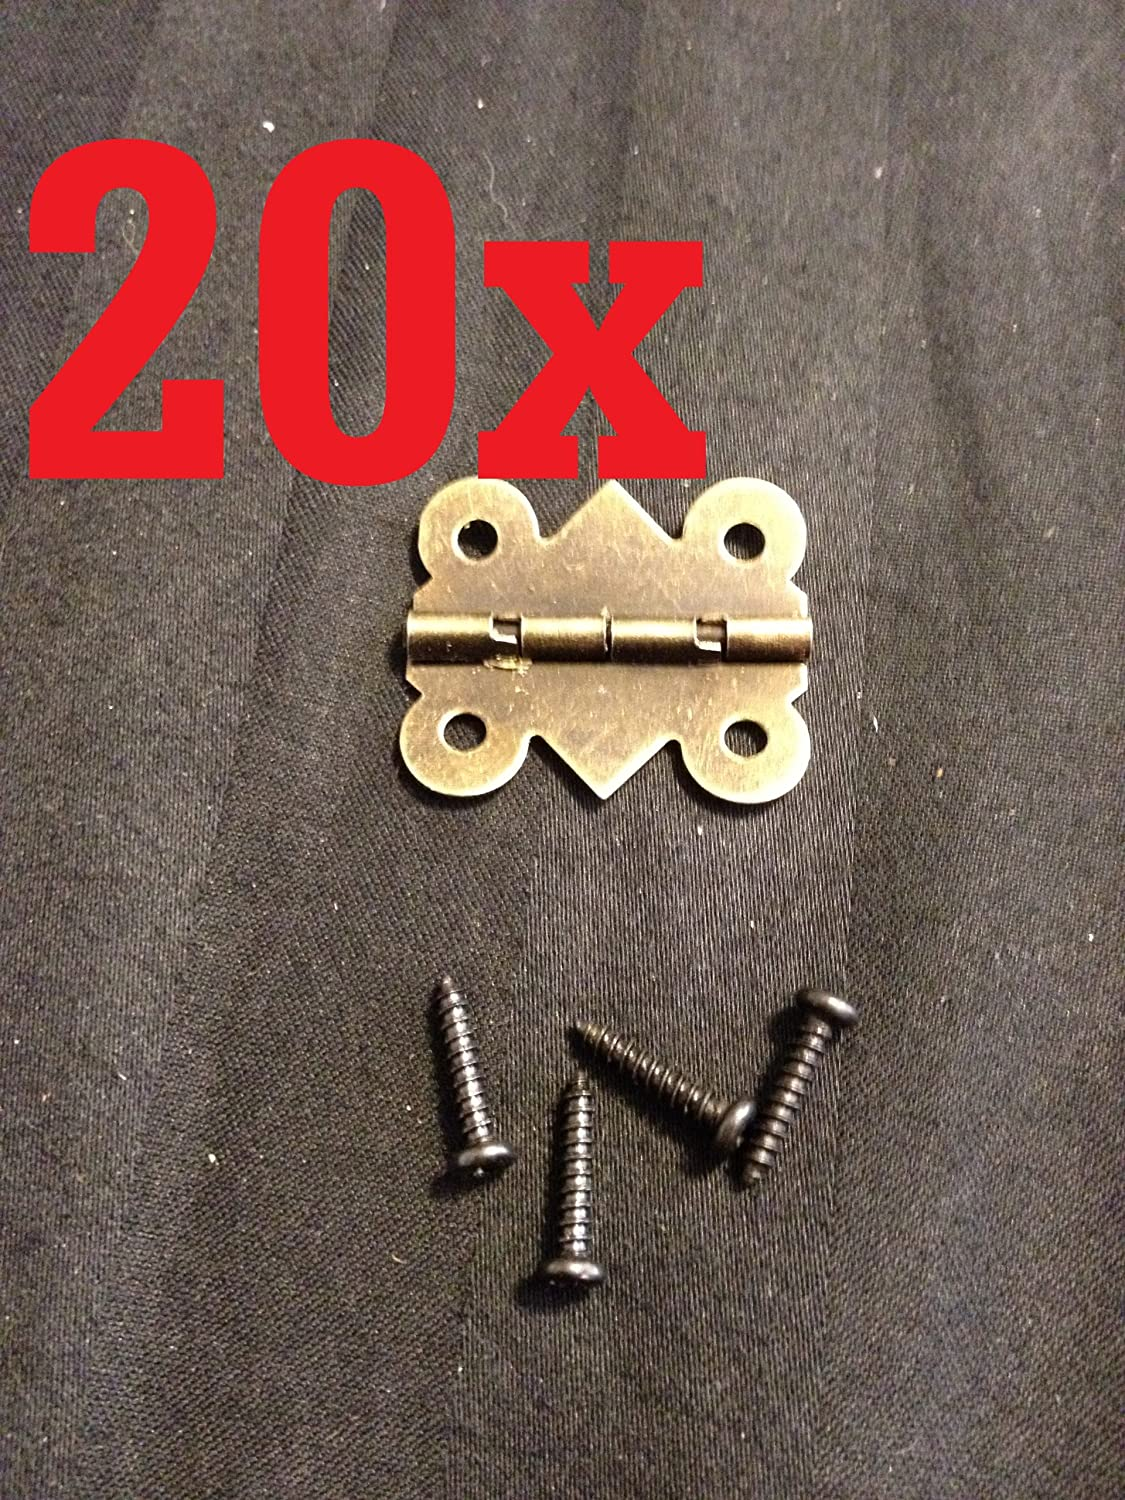 20x Butt Hinge Bronze Small Mini Doll House Antique M00812 Carved Wood Box B24